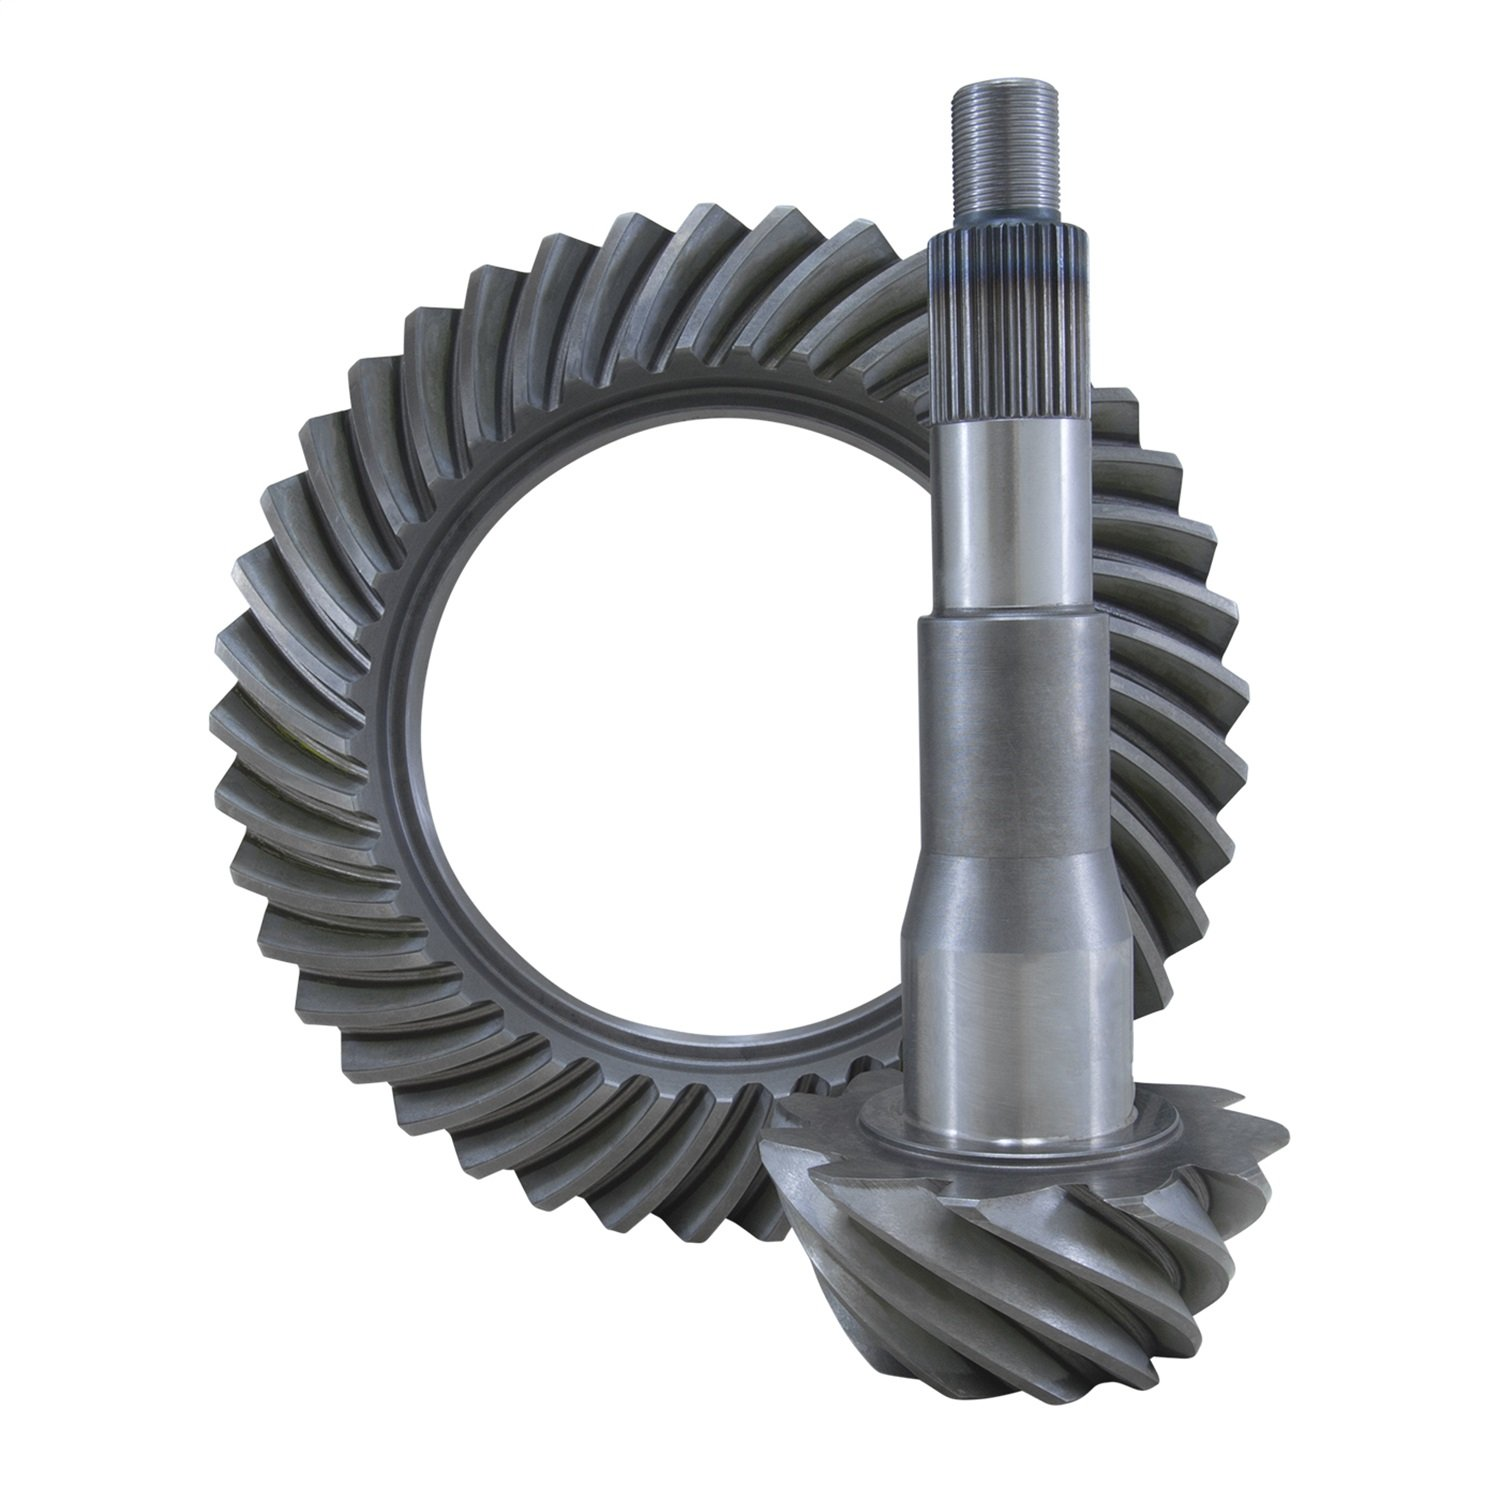 USA Standard Gear (ZG F10.25-456L) Ring & Pinion Gear Set for Ford 10.25 Differential